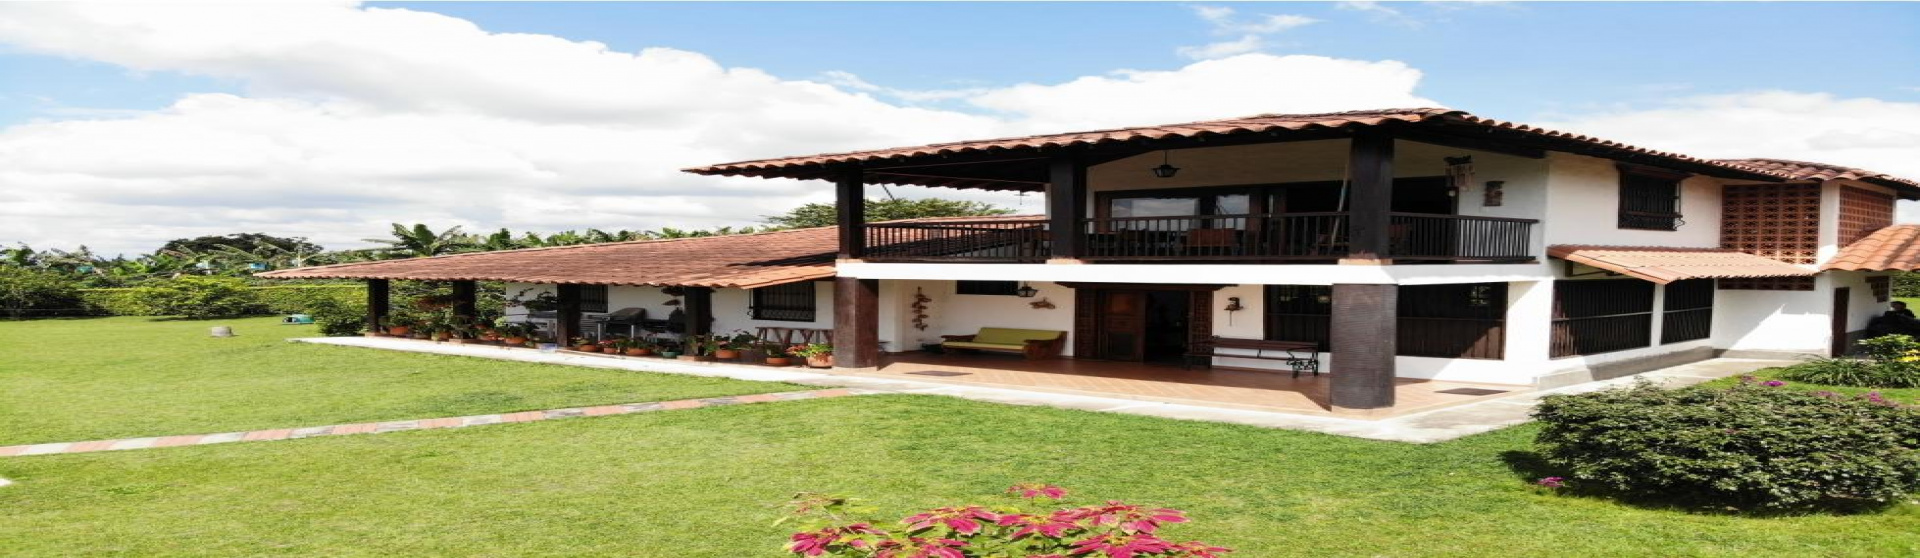 Departamento del Quindío, Armenia, 3 Bedrooms Bedrooms, ,3 BathroomsBathrooms,Villa,For Sale,Departamento del Quindío, Armenia,20713